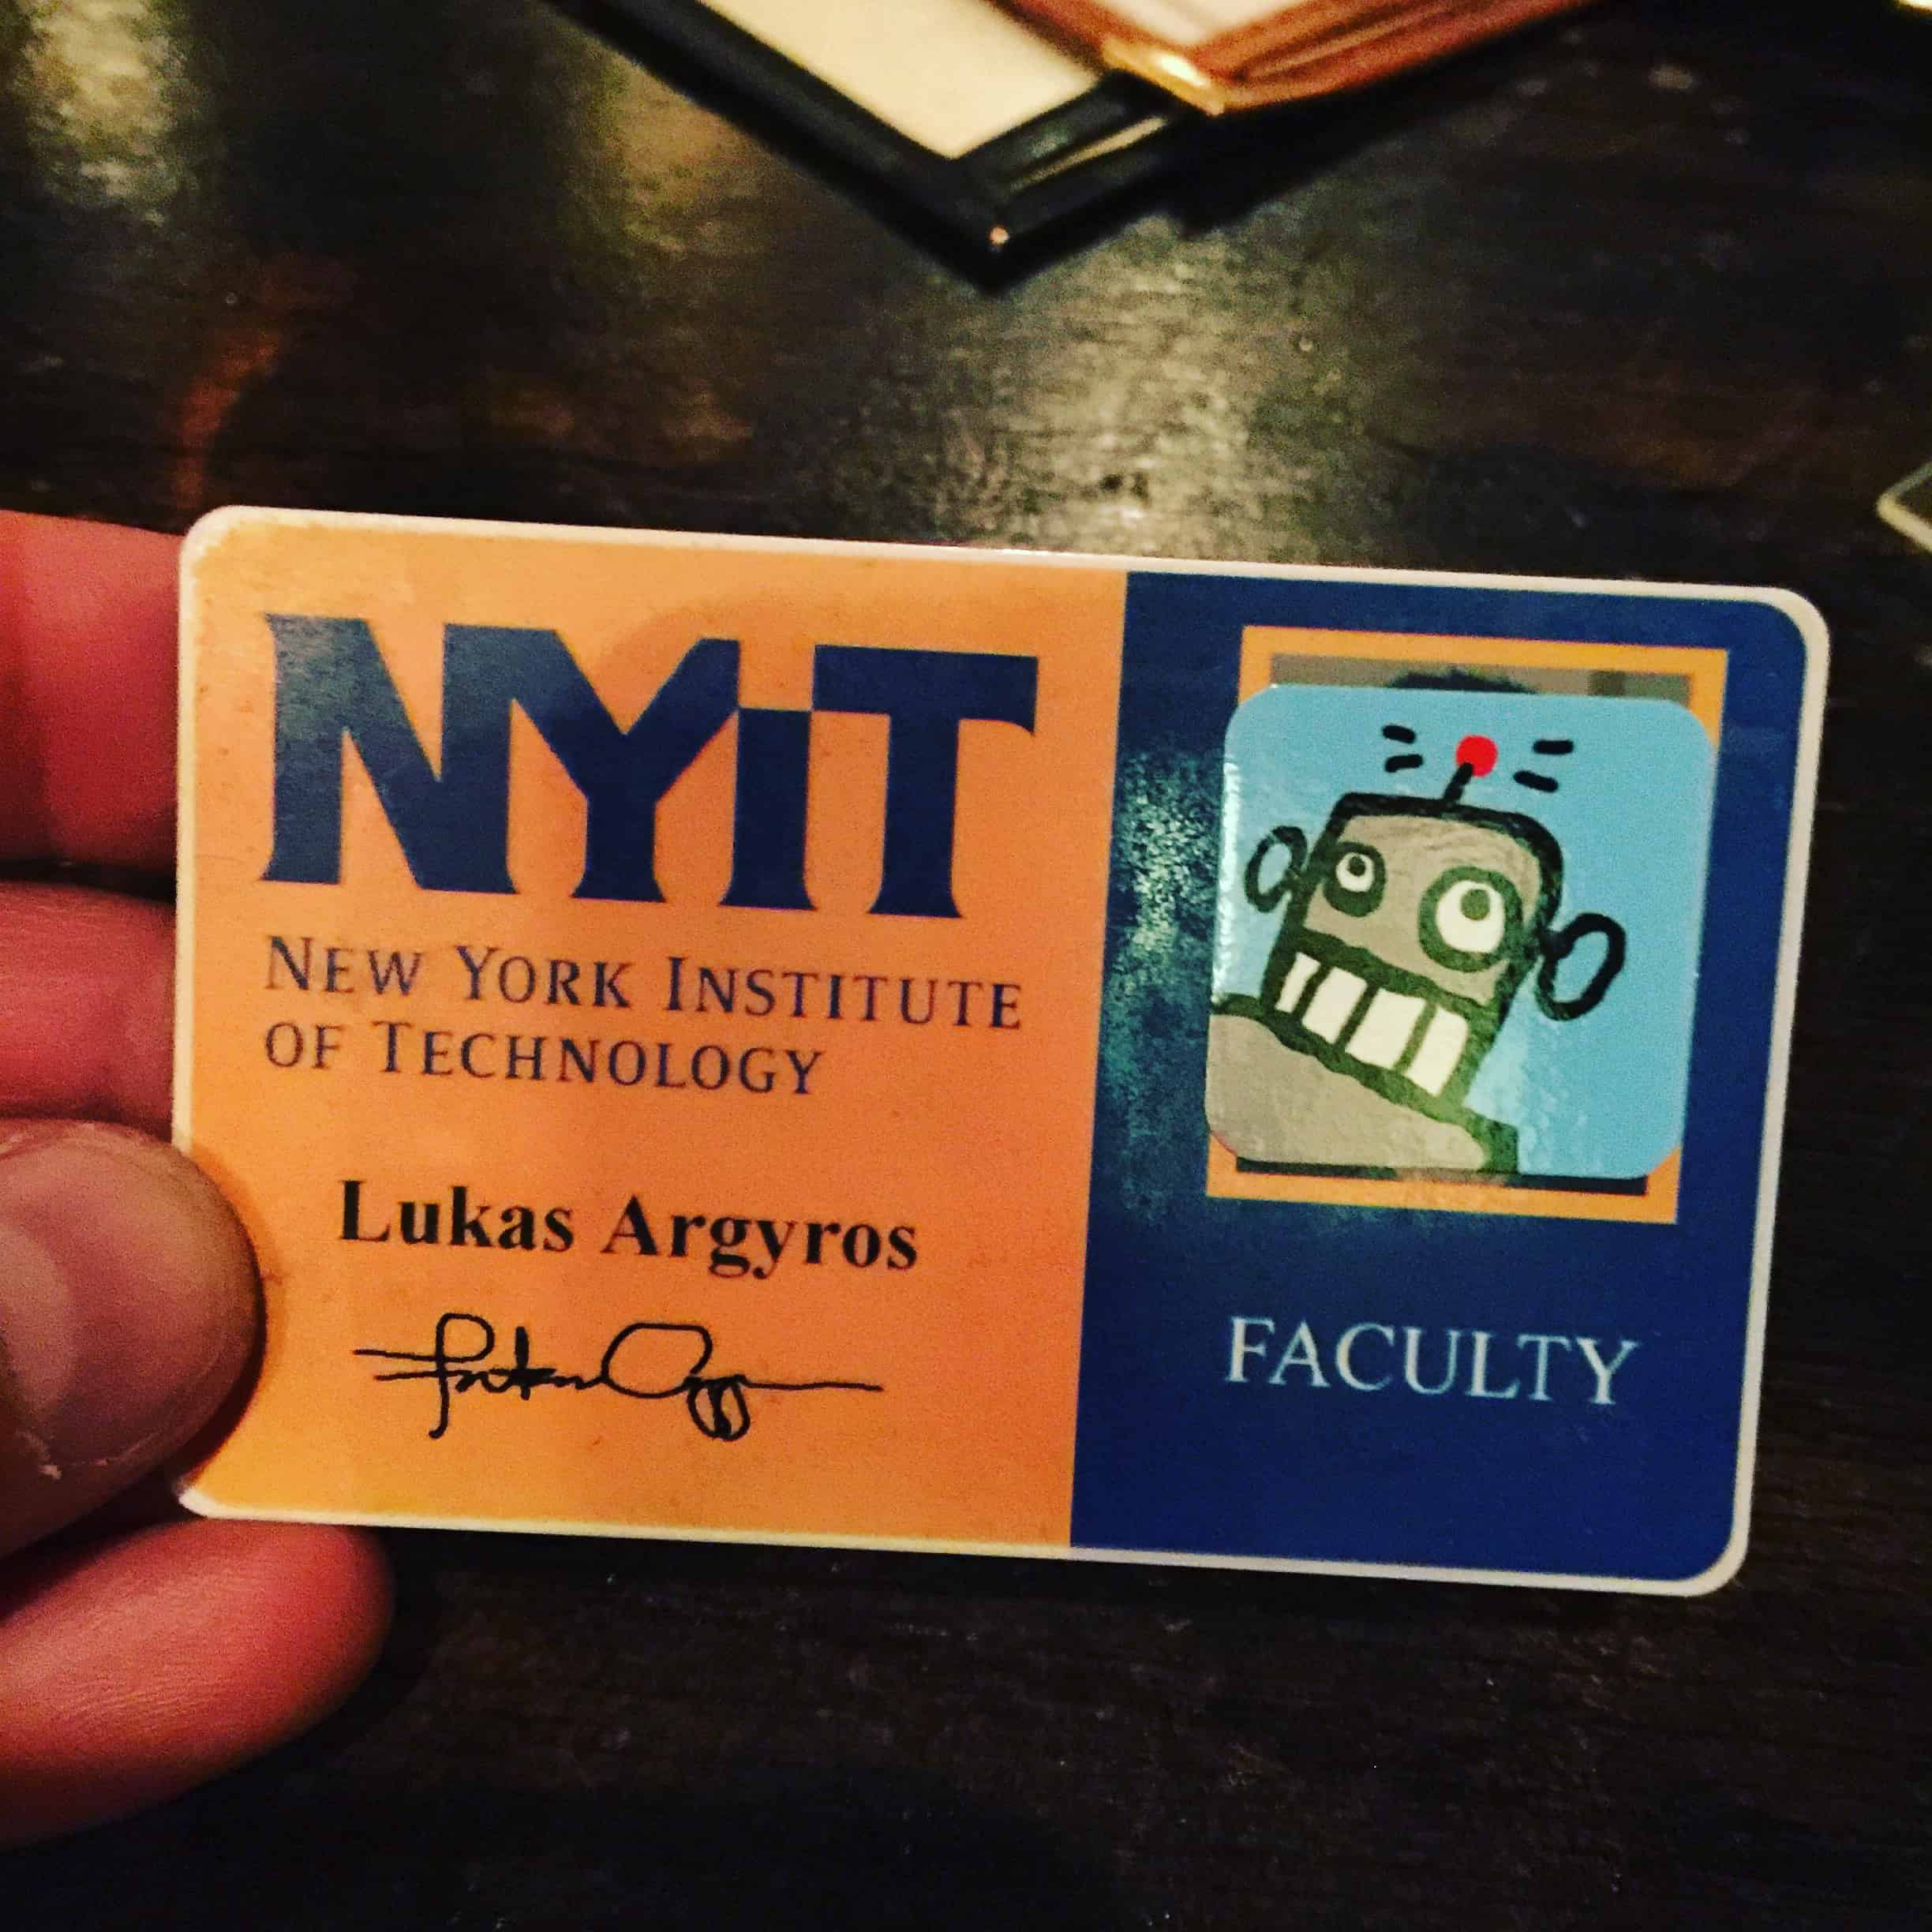 Dude Robot is a Professor of Architecture at NYIT! #duderobot #nyitarchitecture #whatanarchitectdoes